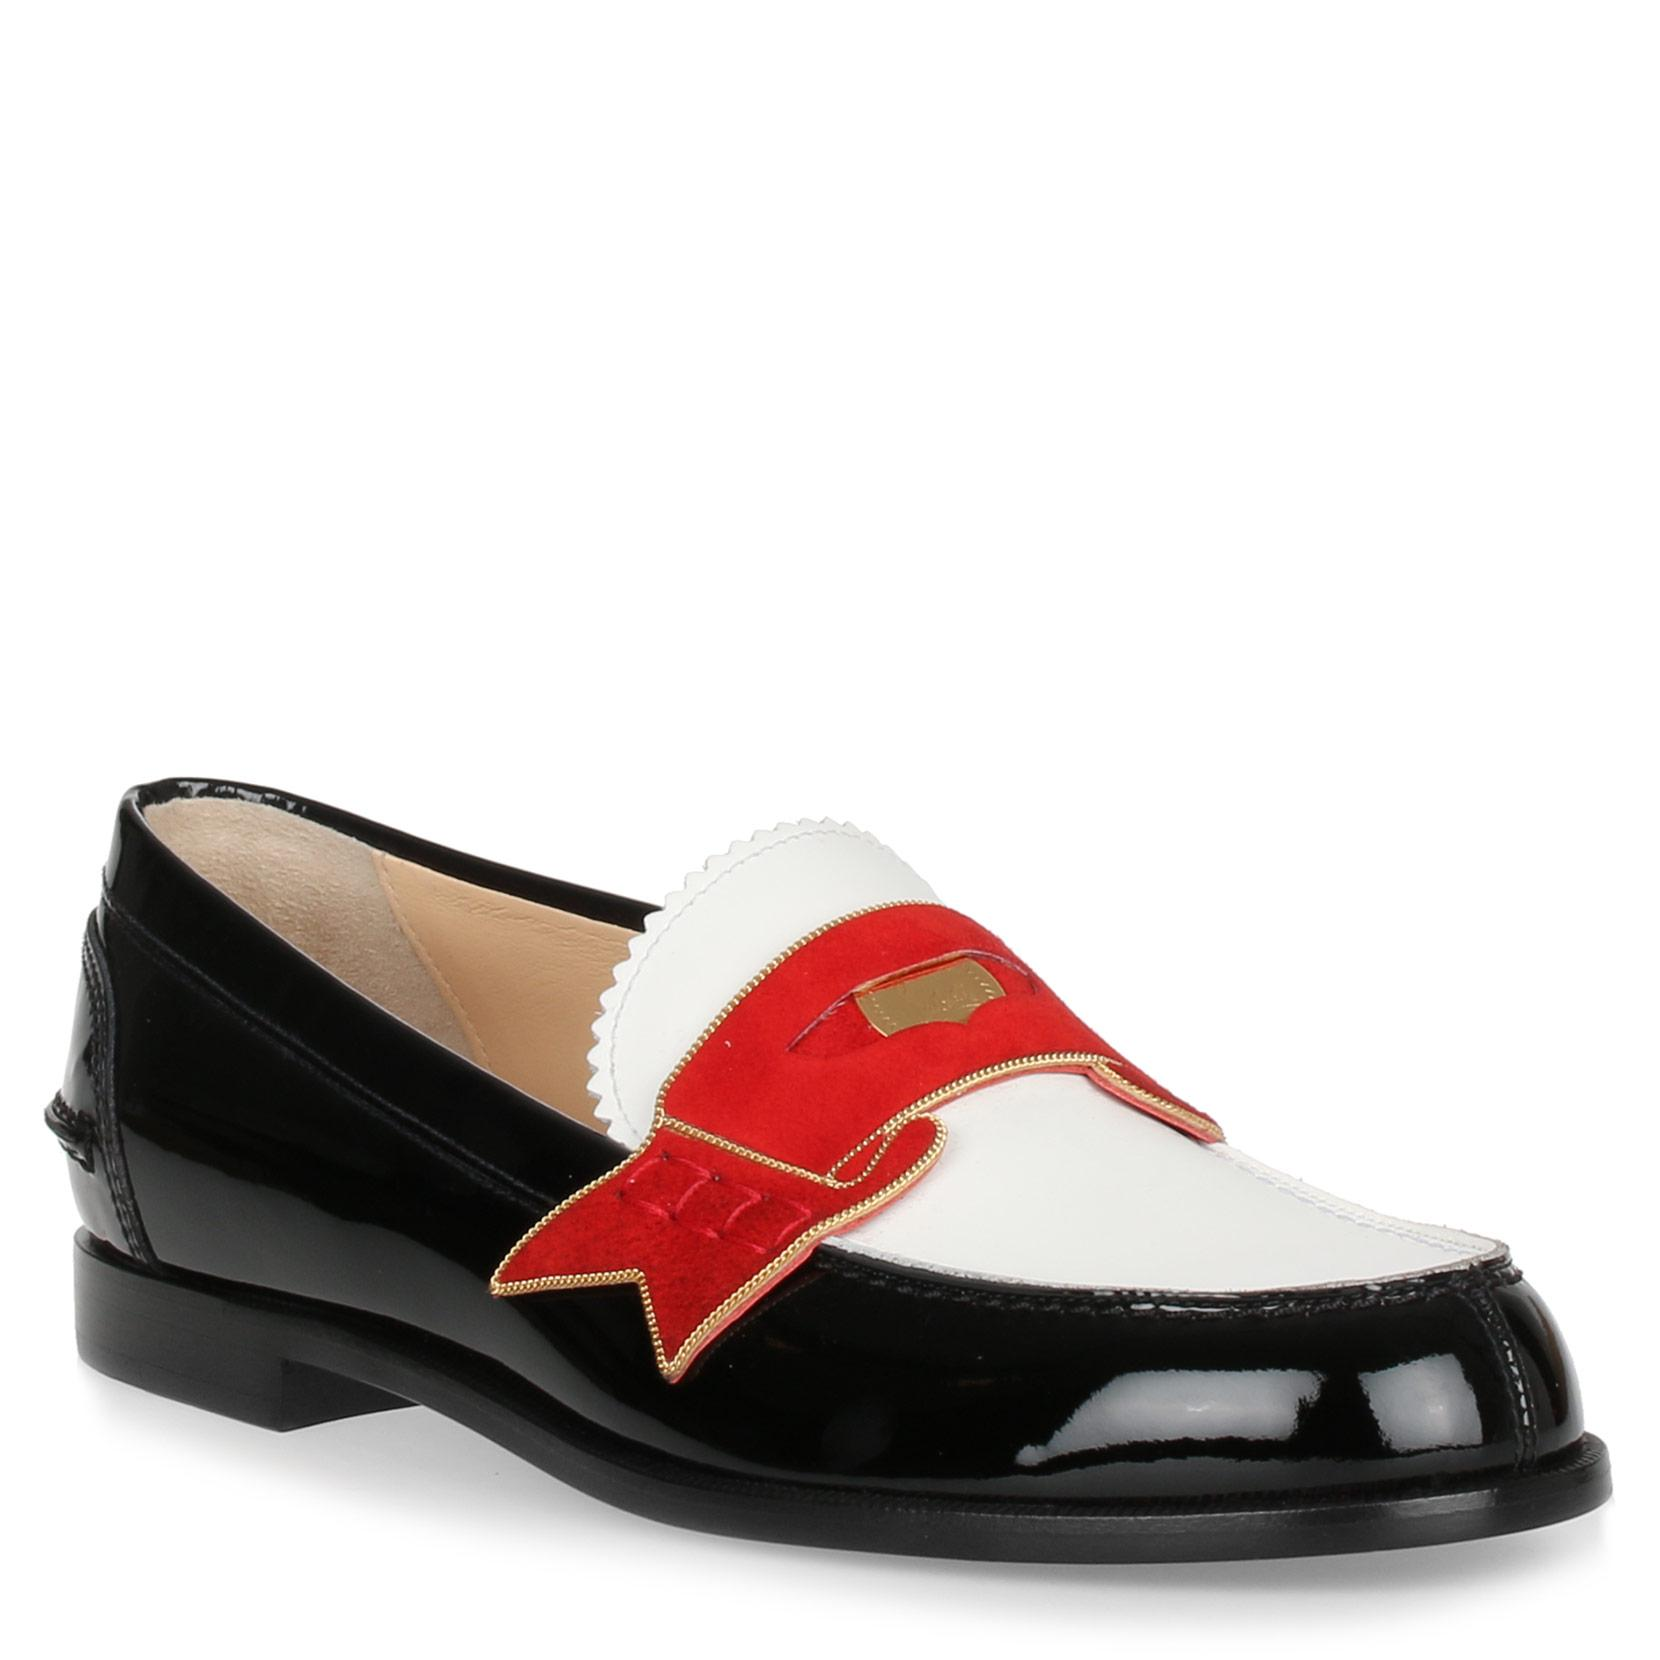 8c494cb5e48 Moana Suede And Chain-Trimmed Leather Loafers in Black